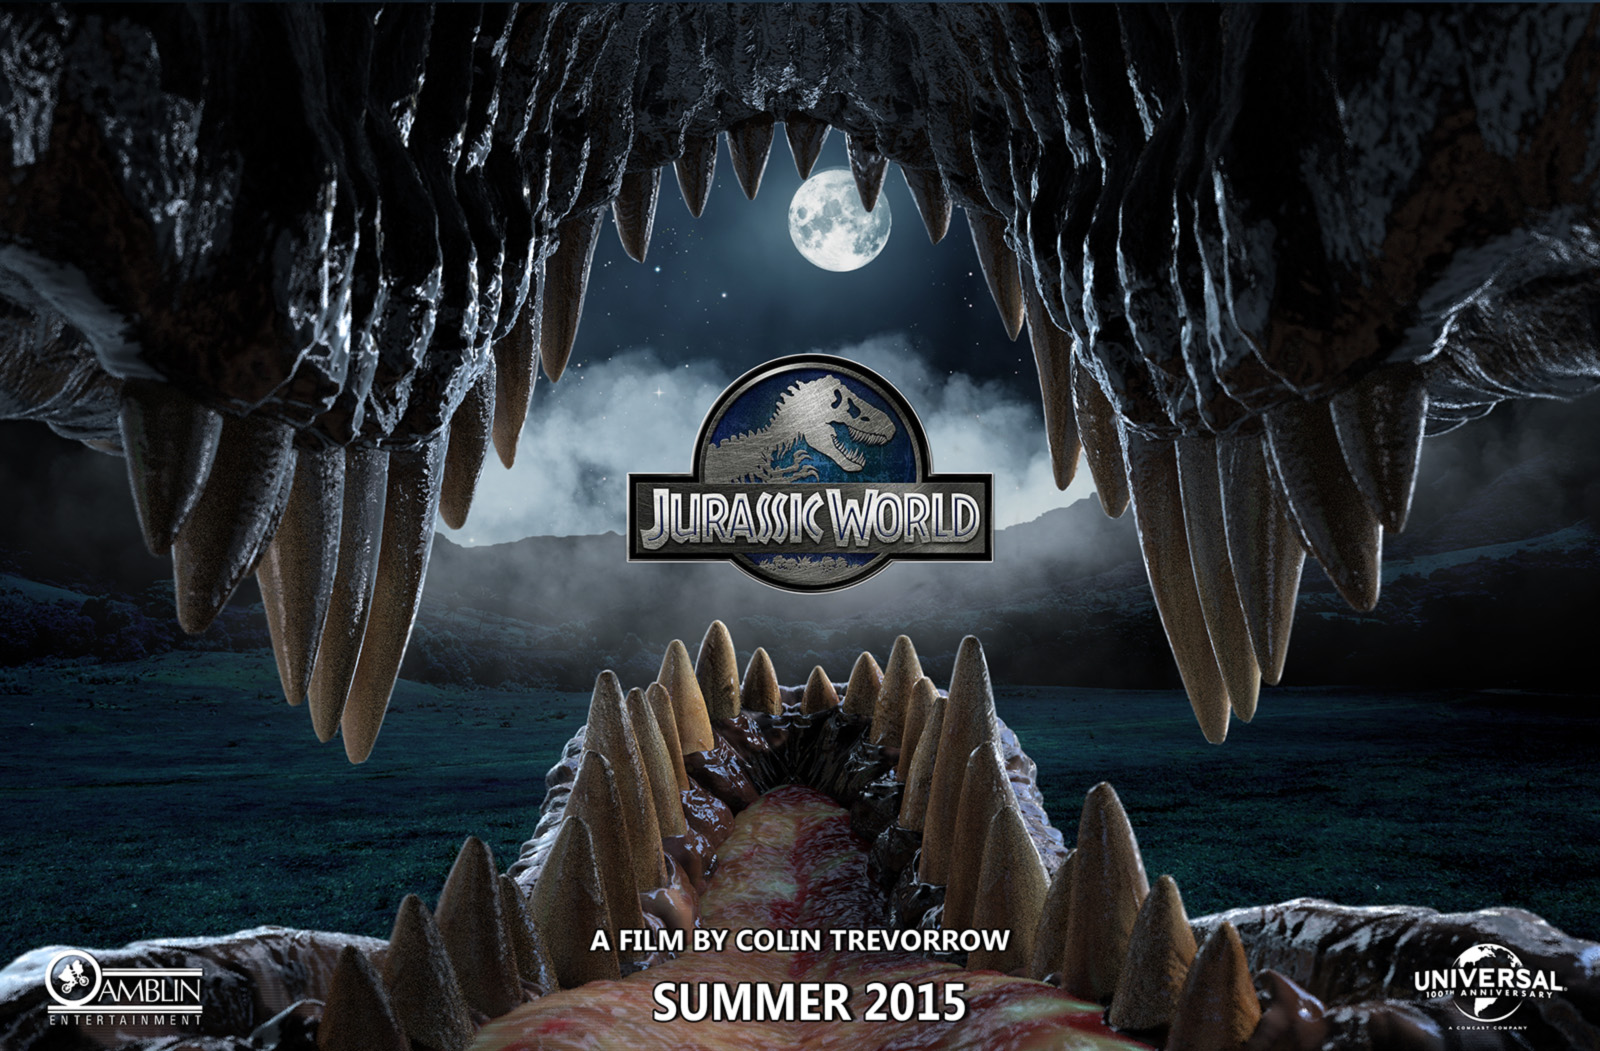 Jurassic World le prime foto ufficiali del film